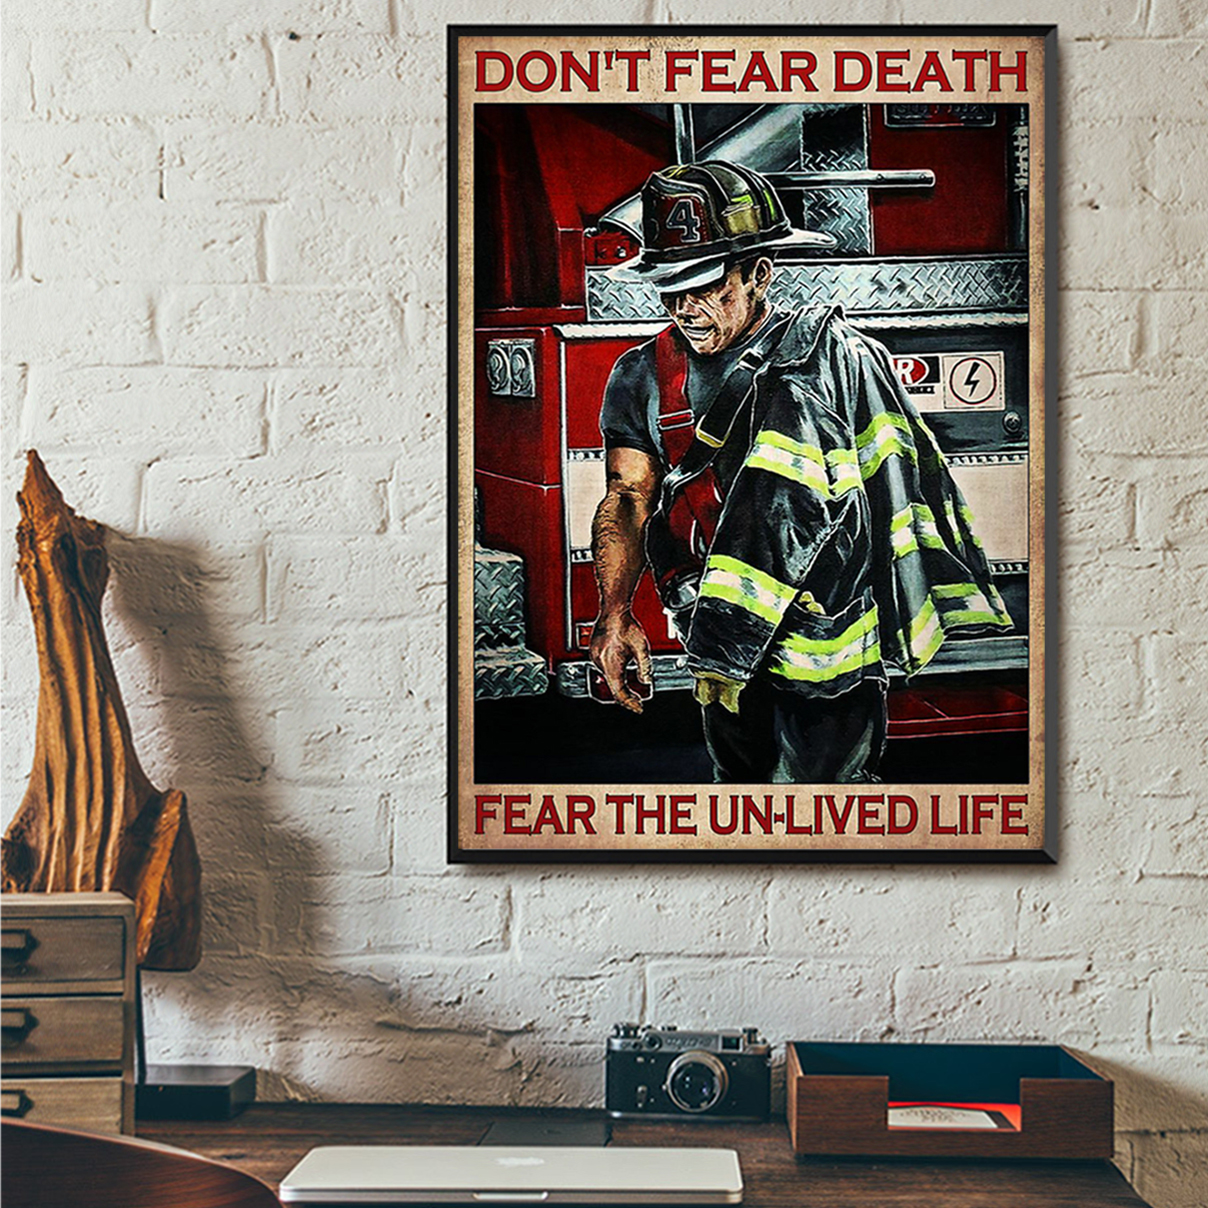 Firefighter don't fear death fear the un-lived life poster A2